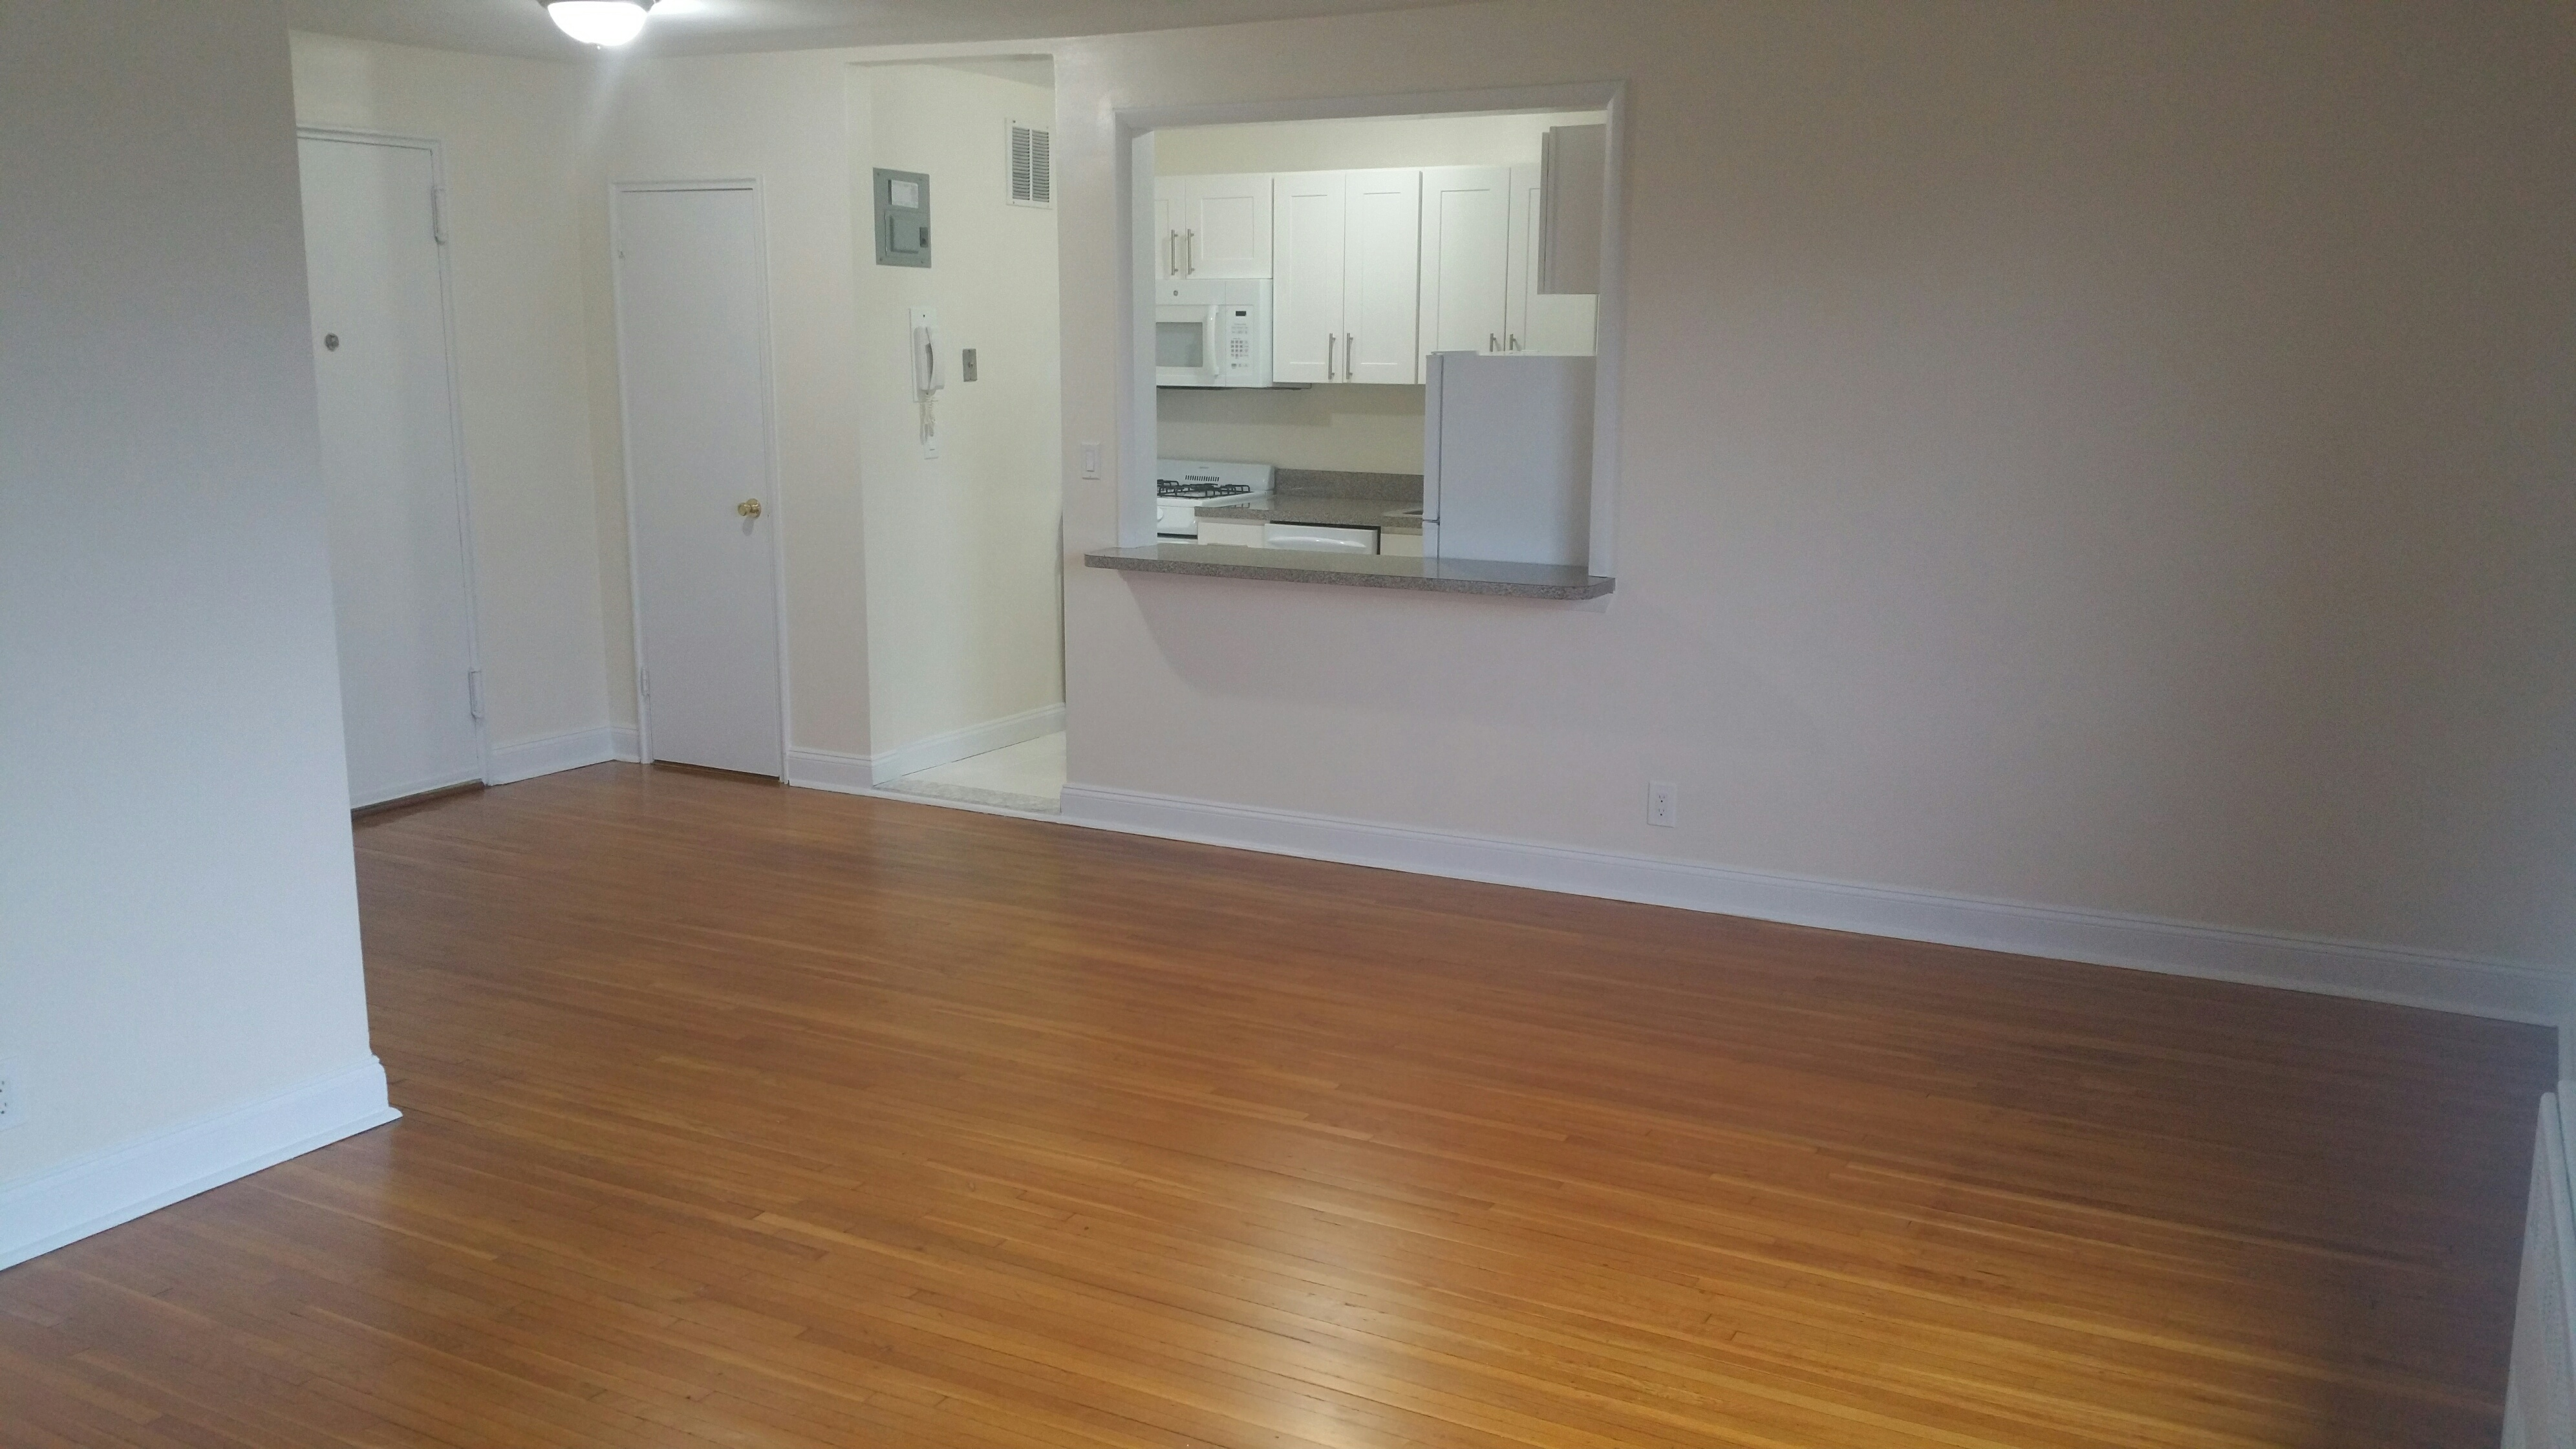 Well kept elevated property- Large sunny immaculate huge 2 room studio style layouts with many custom features This rental features shimmery hardwood, updated kitchen and bath, heat incl, laundry on site, and close proximity to metro north. Well maintained  immaculate property.